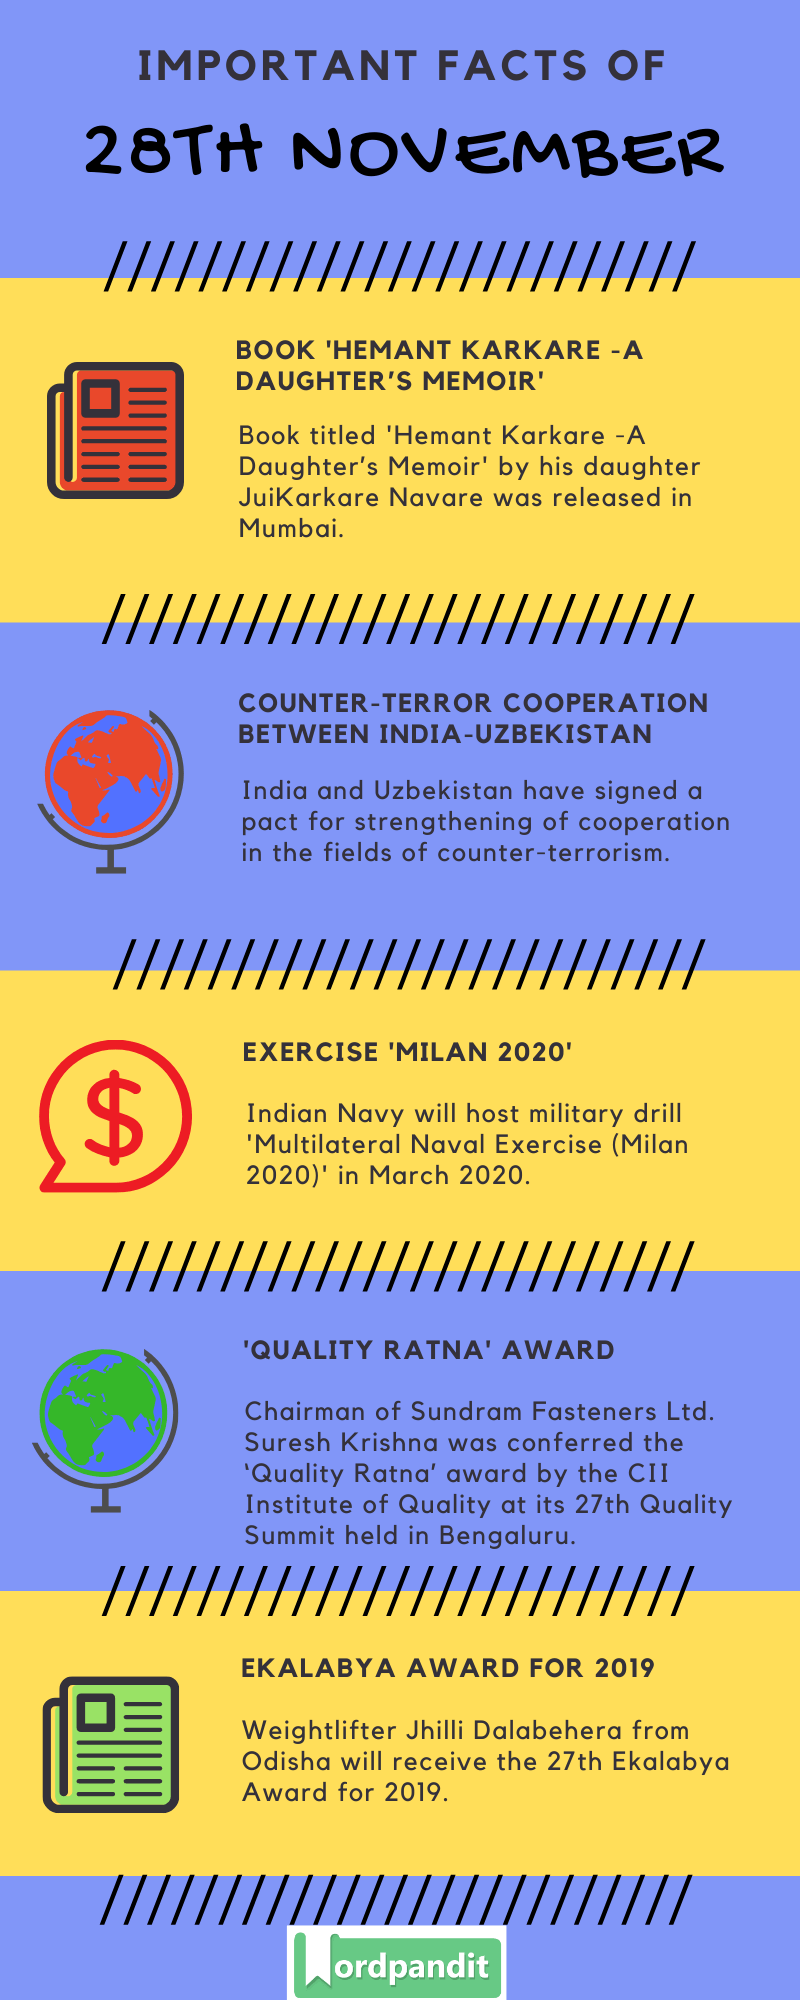 Daily Current Affairs 28 November 2019 Current Affairs Quiz 28 November 2019 Current Affairs Infographic